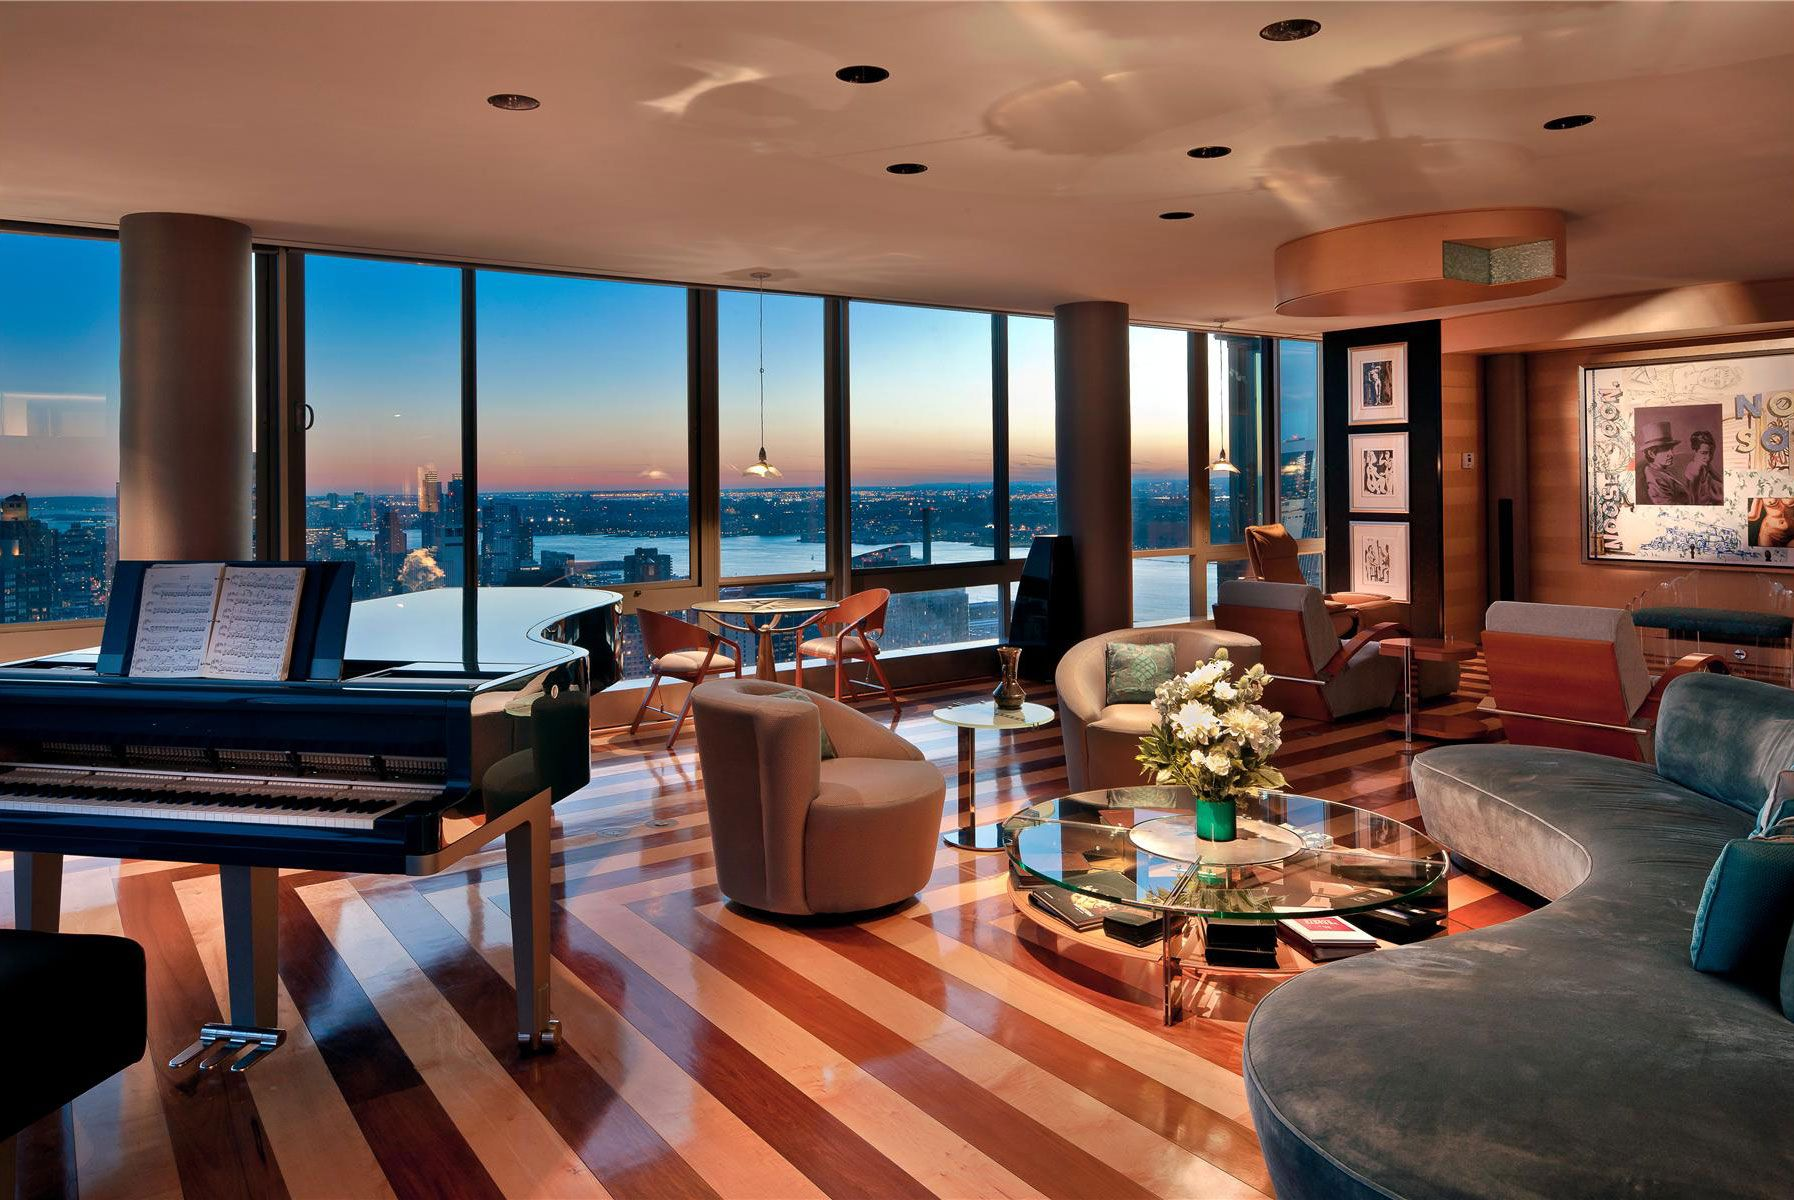 The gartner penthouse for sale in new york city for Luxury penthouses in manhattan